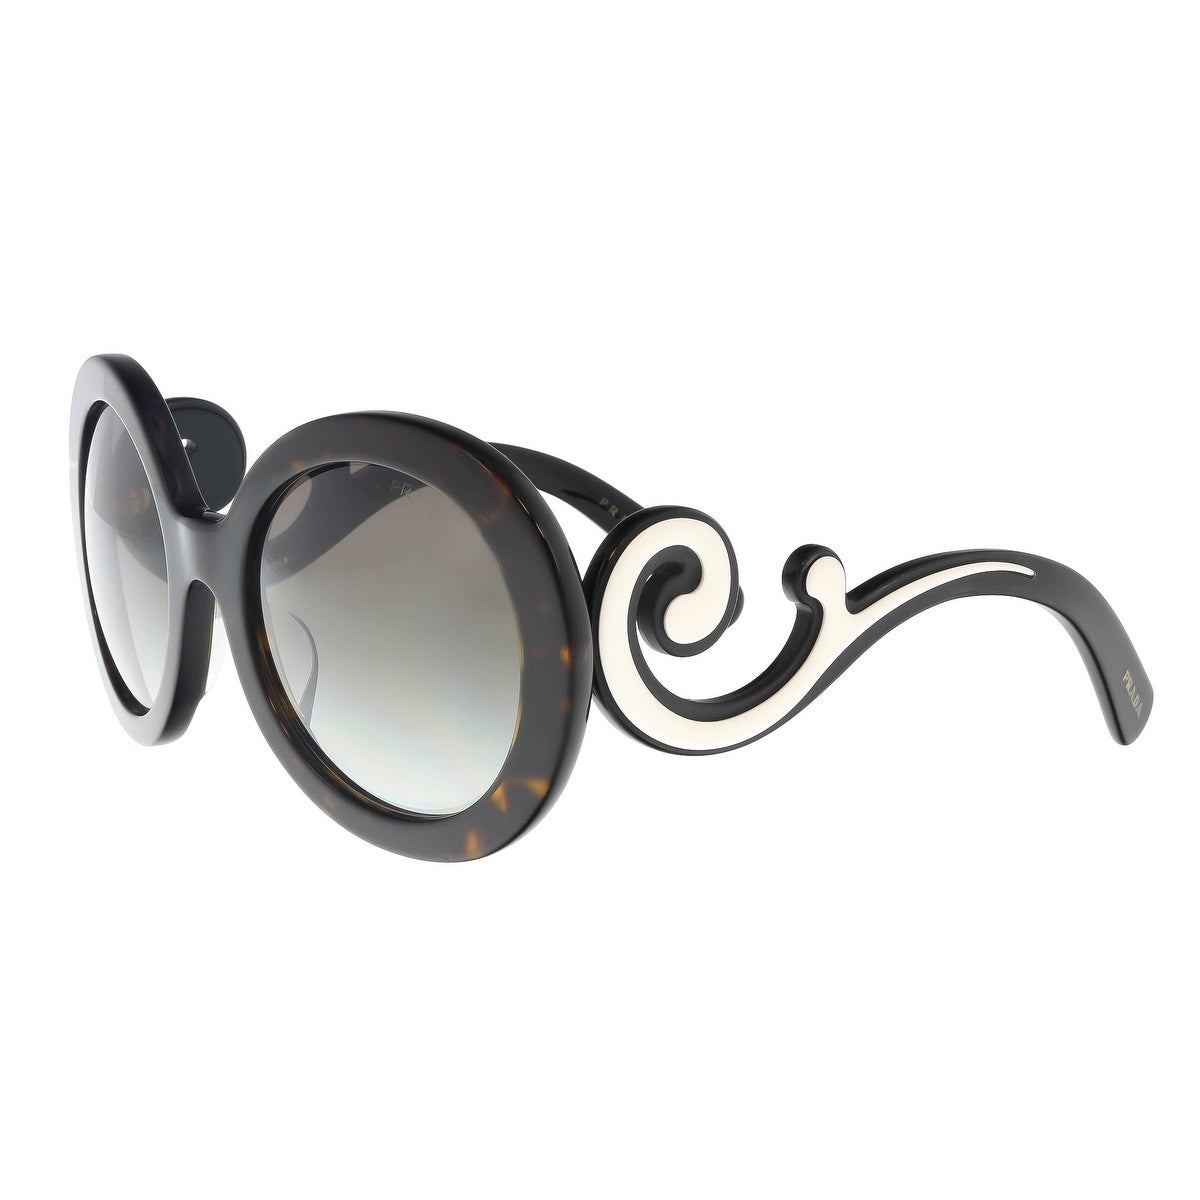 9b0f205b207d Prada Sunglasses | Shop our Best Clothing & Shoes Deals Online at Overstock